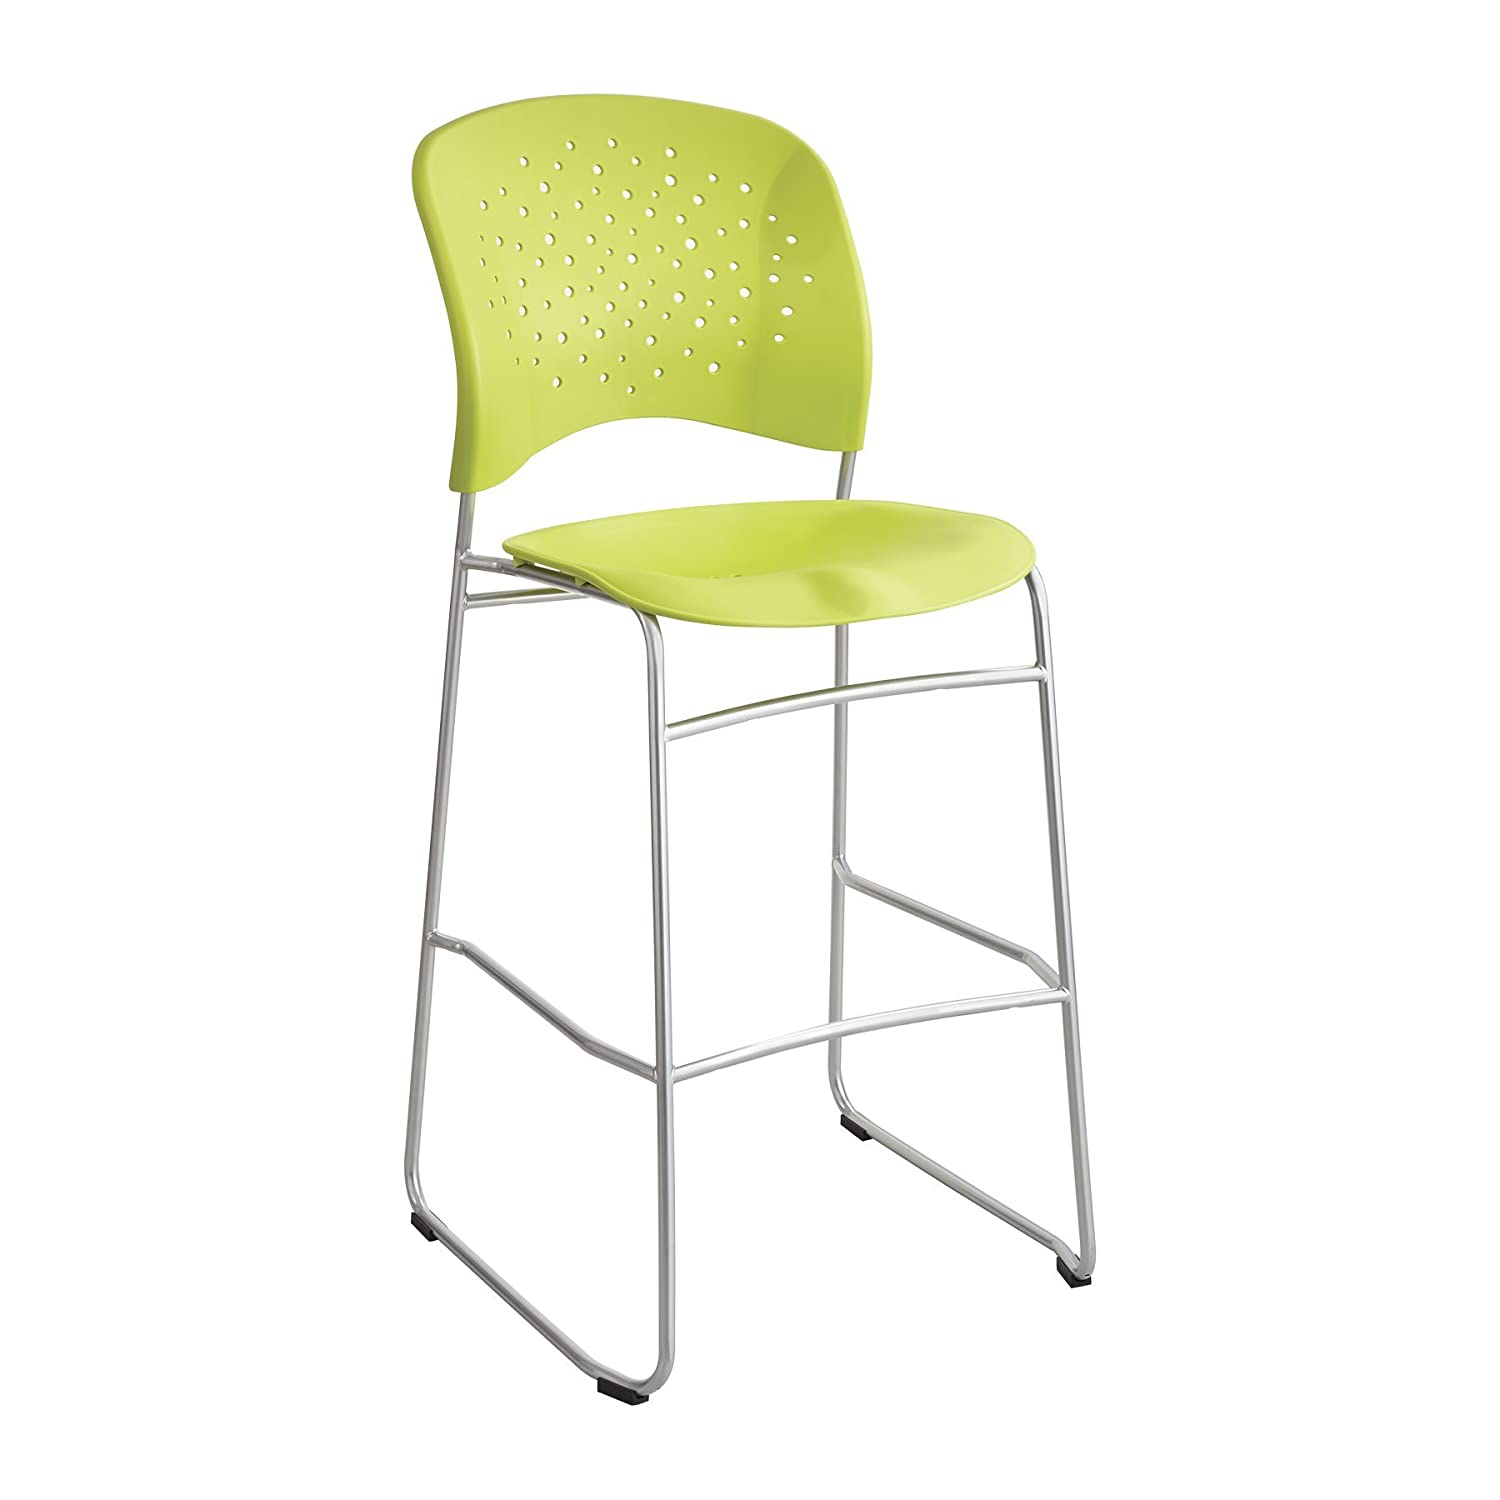 Safco Products Reve Bistro Height Chair with Round Back, Grass